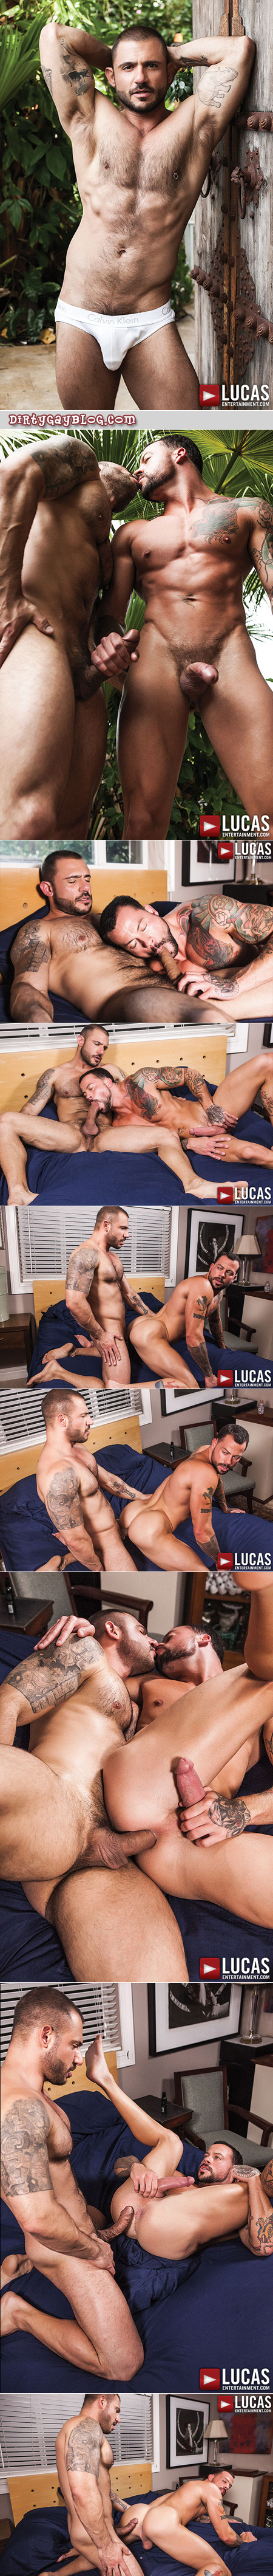 Muscular hunk is fucked bareback for the first time by a Latino muscle stud.